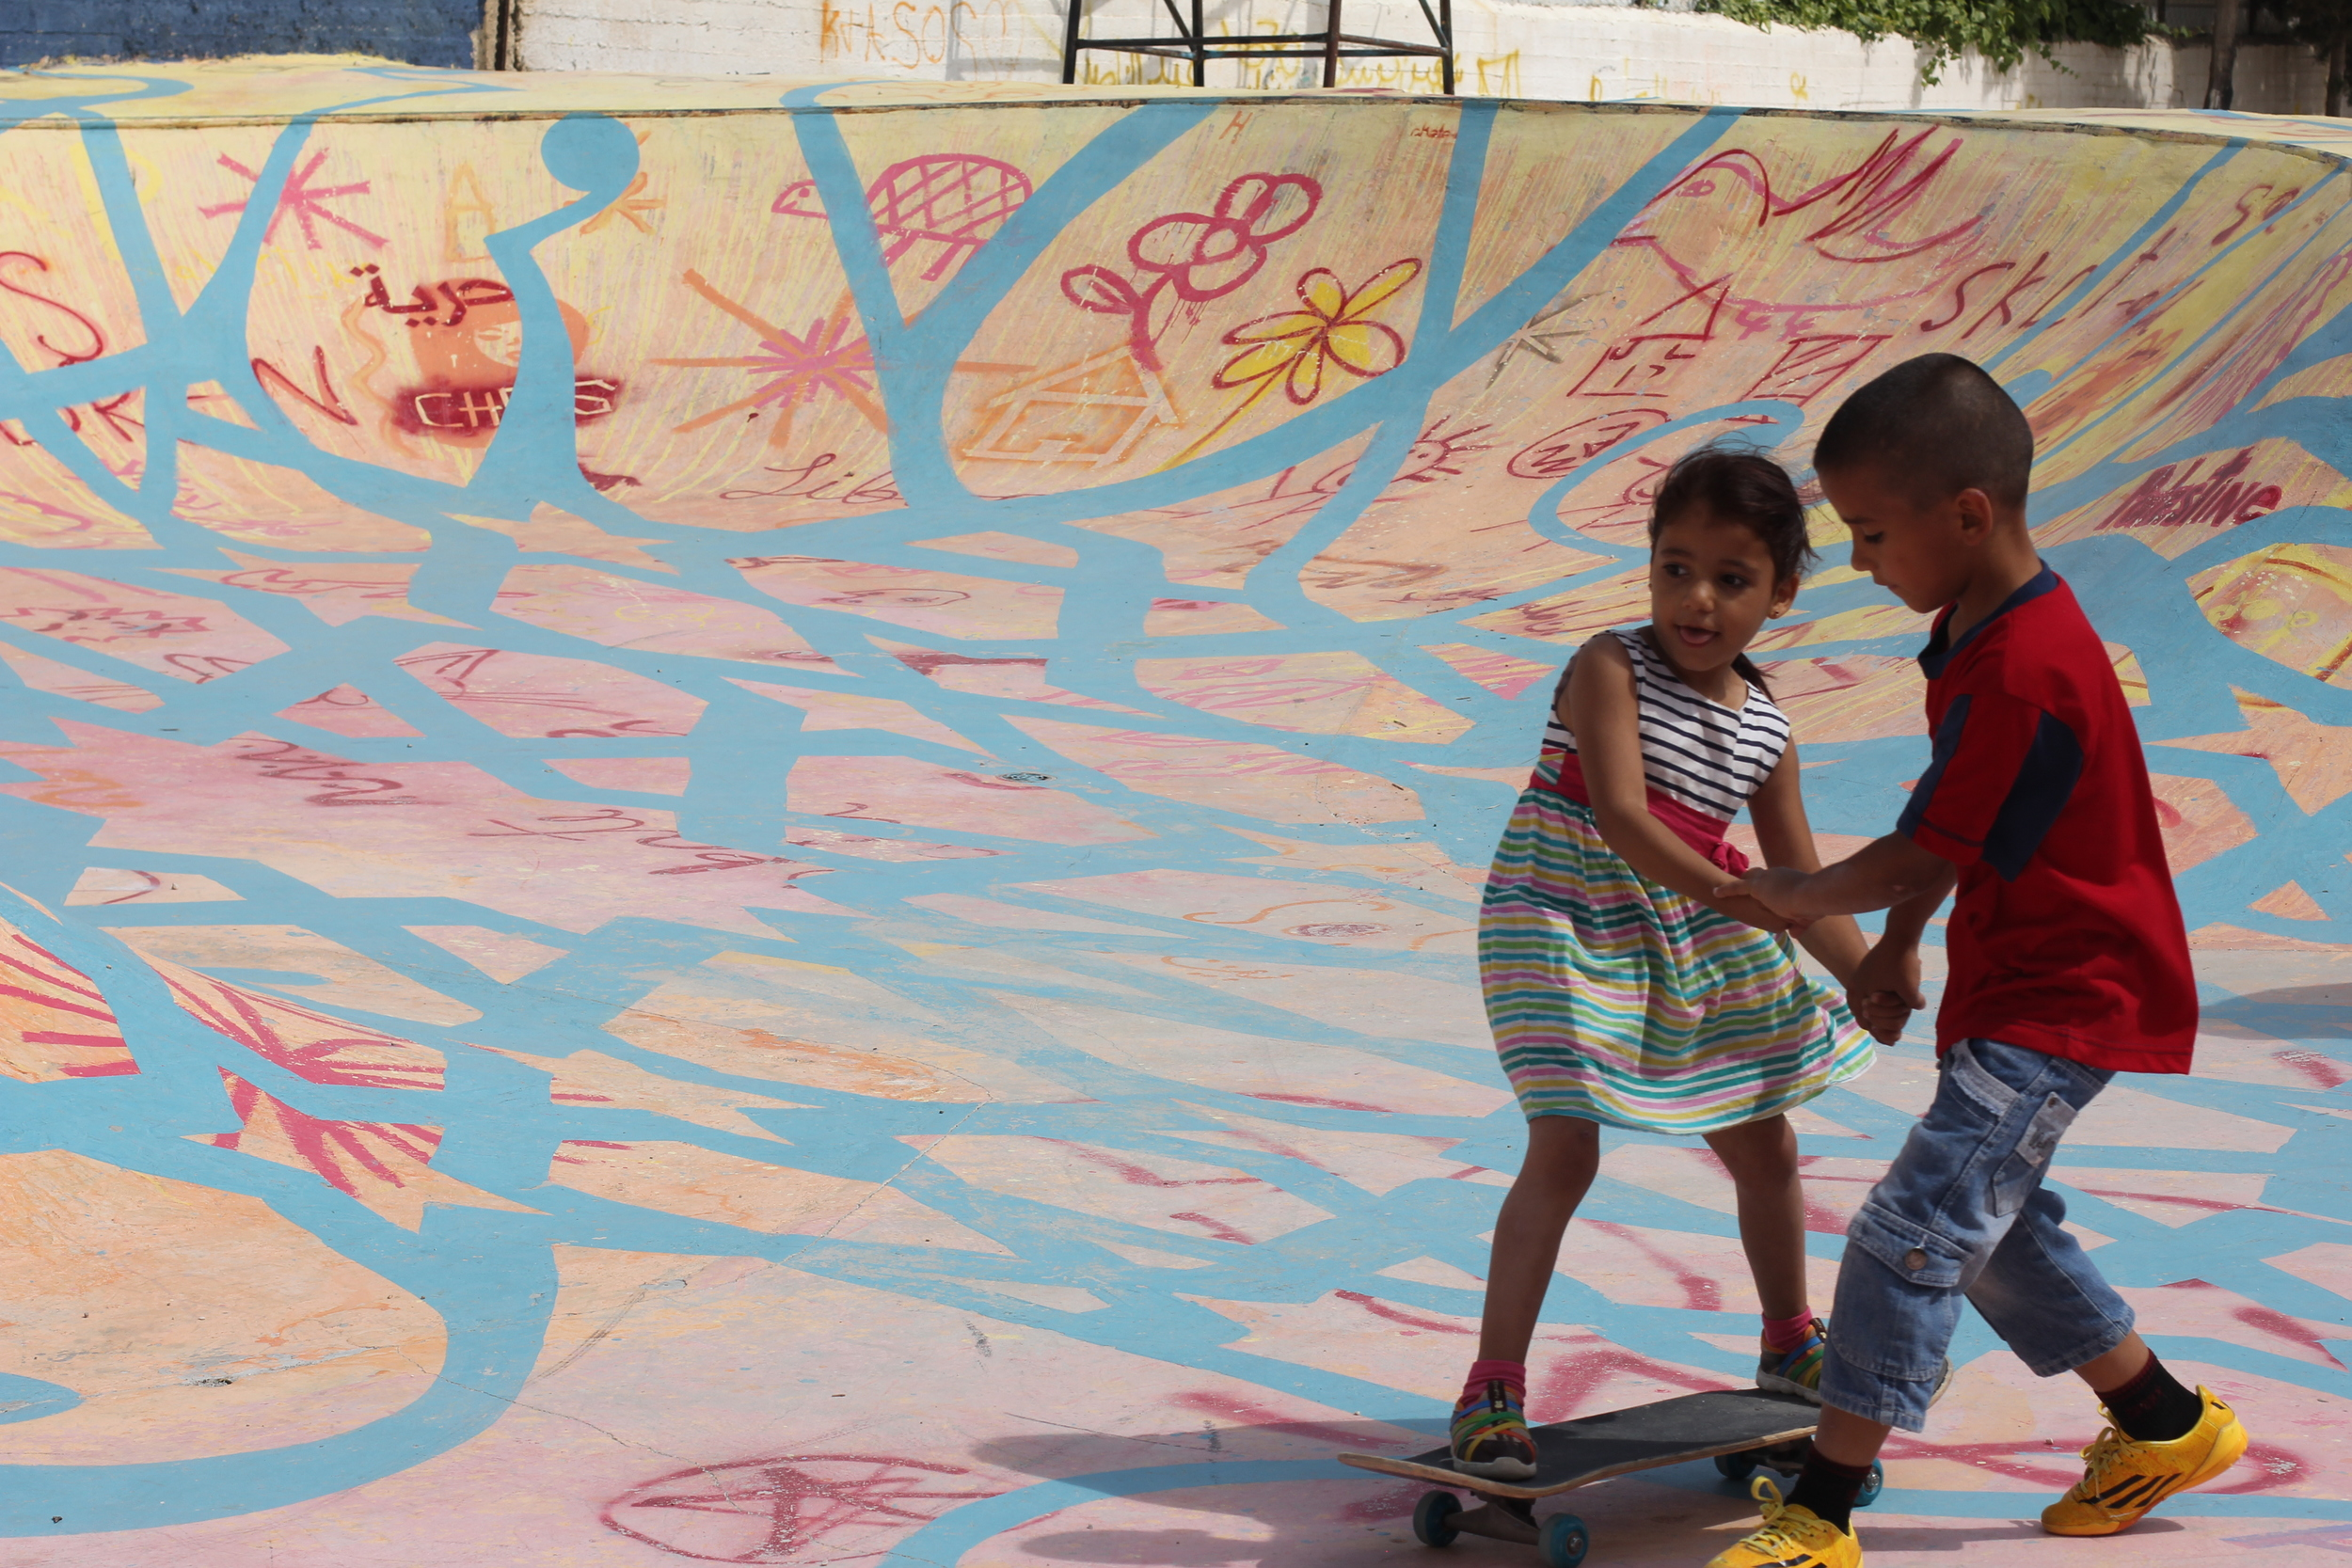 Teaching at the Skate-Aid park in Bethlehem